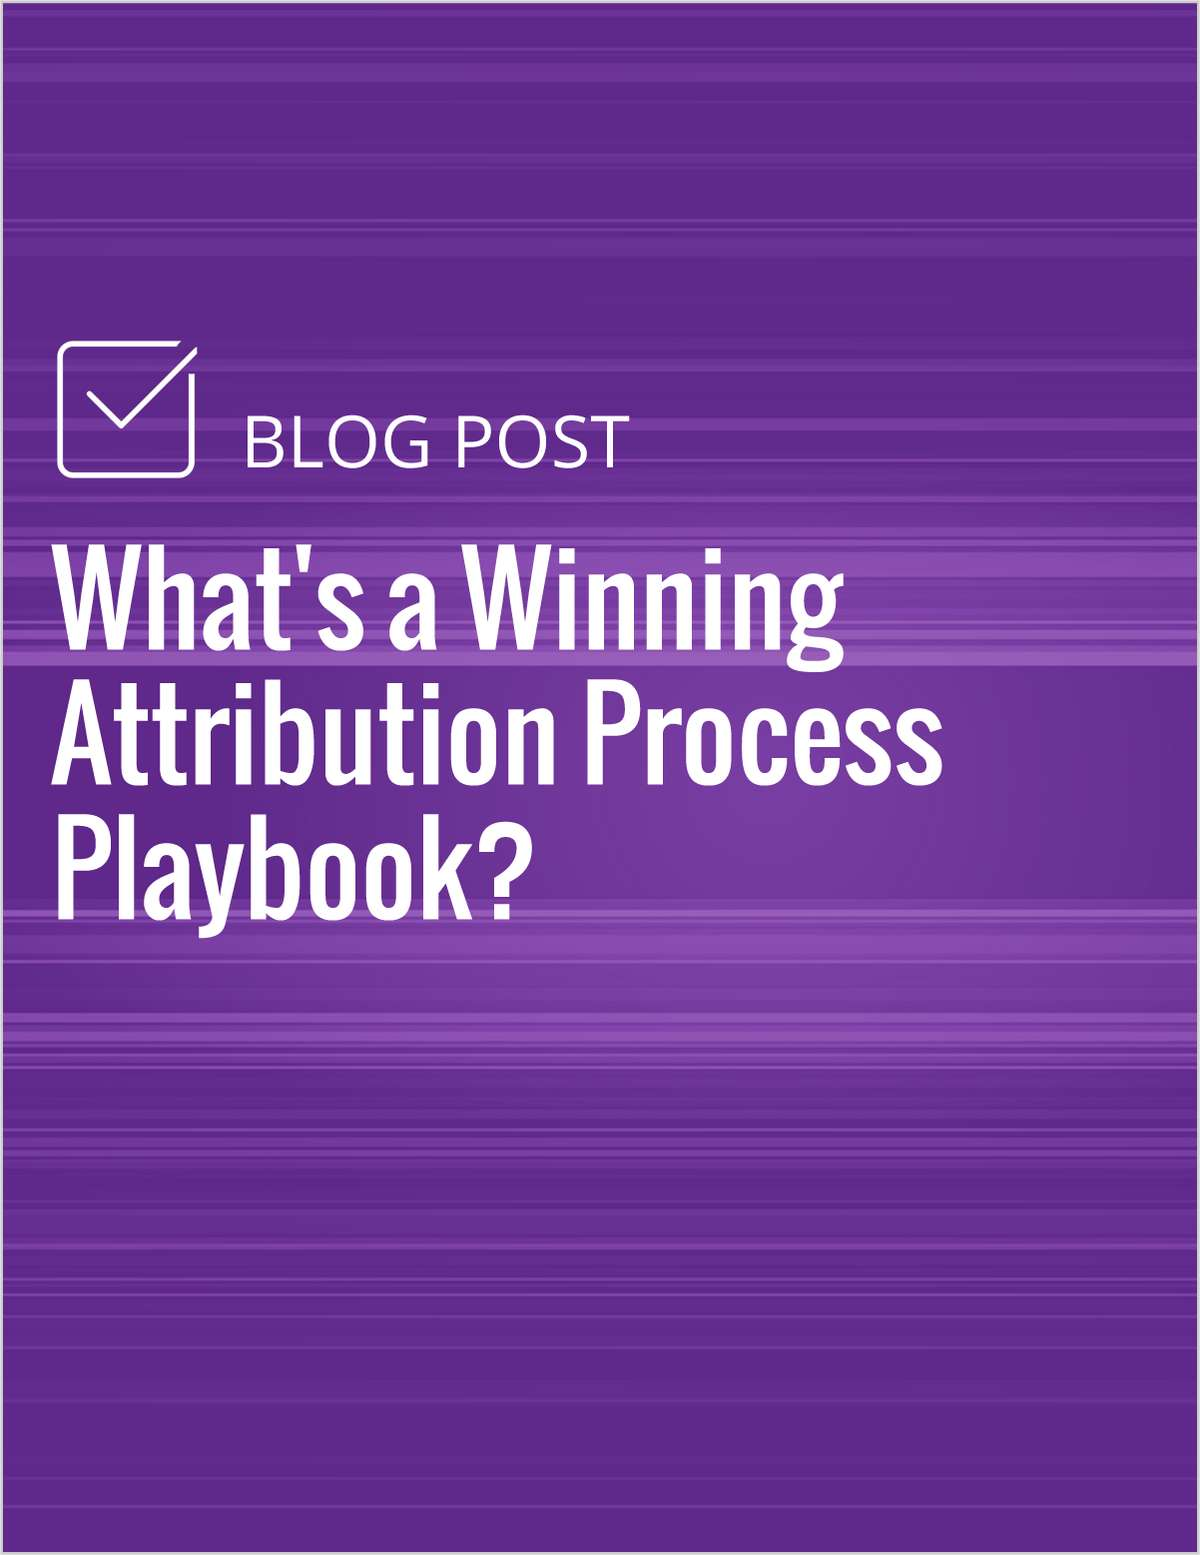 What's a Winning Attribution Process Playbook?